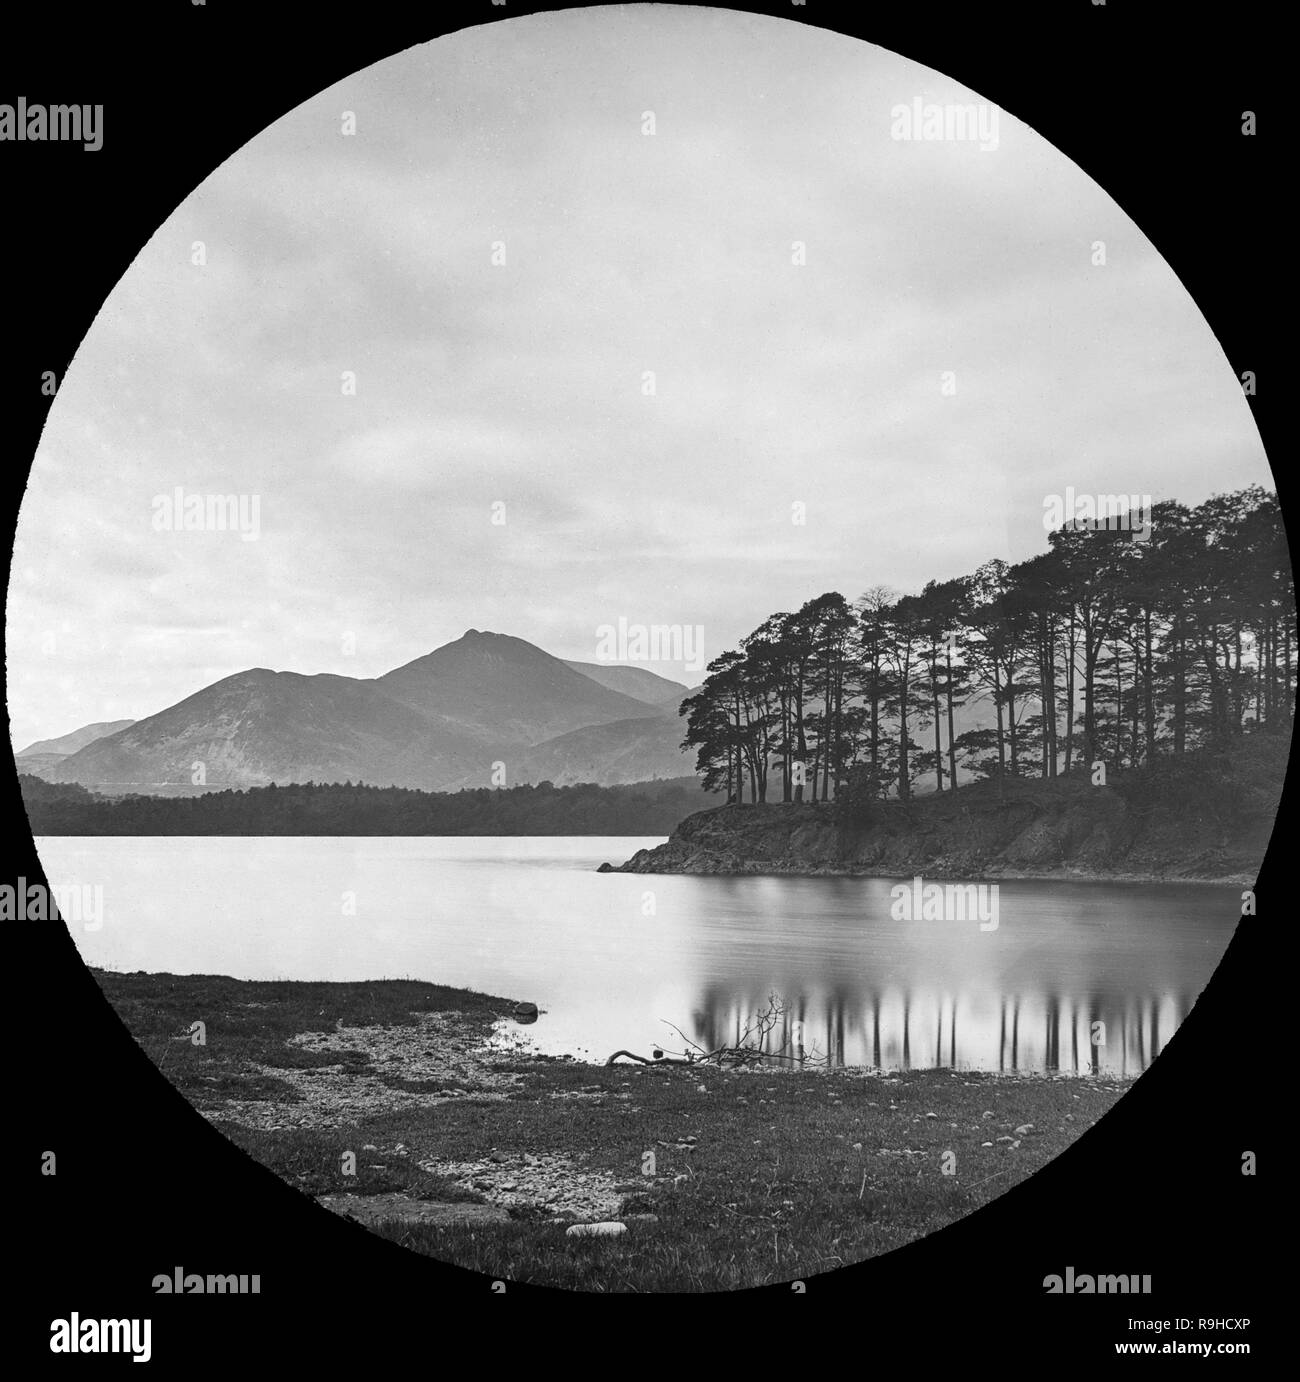 A late Victorian black and white photograph of Friar's Crag, a promontory jutting out into Derwentwater in the Lake District National Park in Cumbria, England. Stock Photo